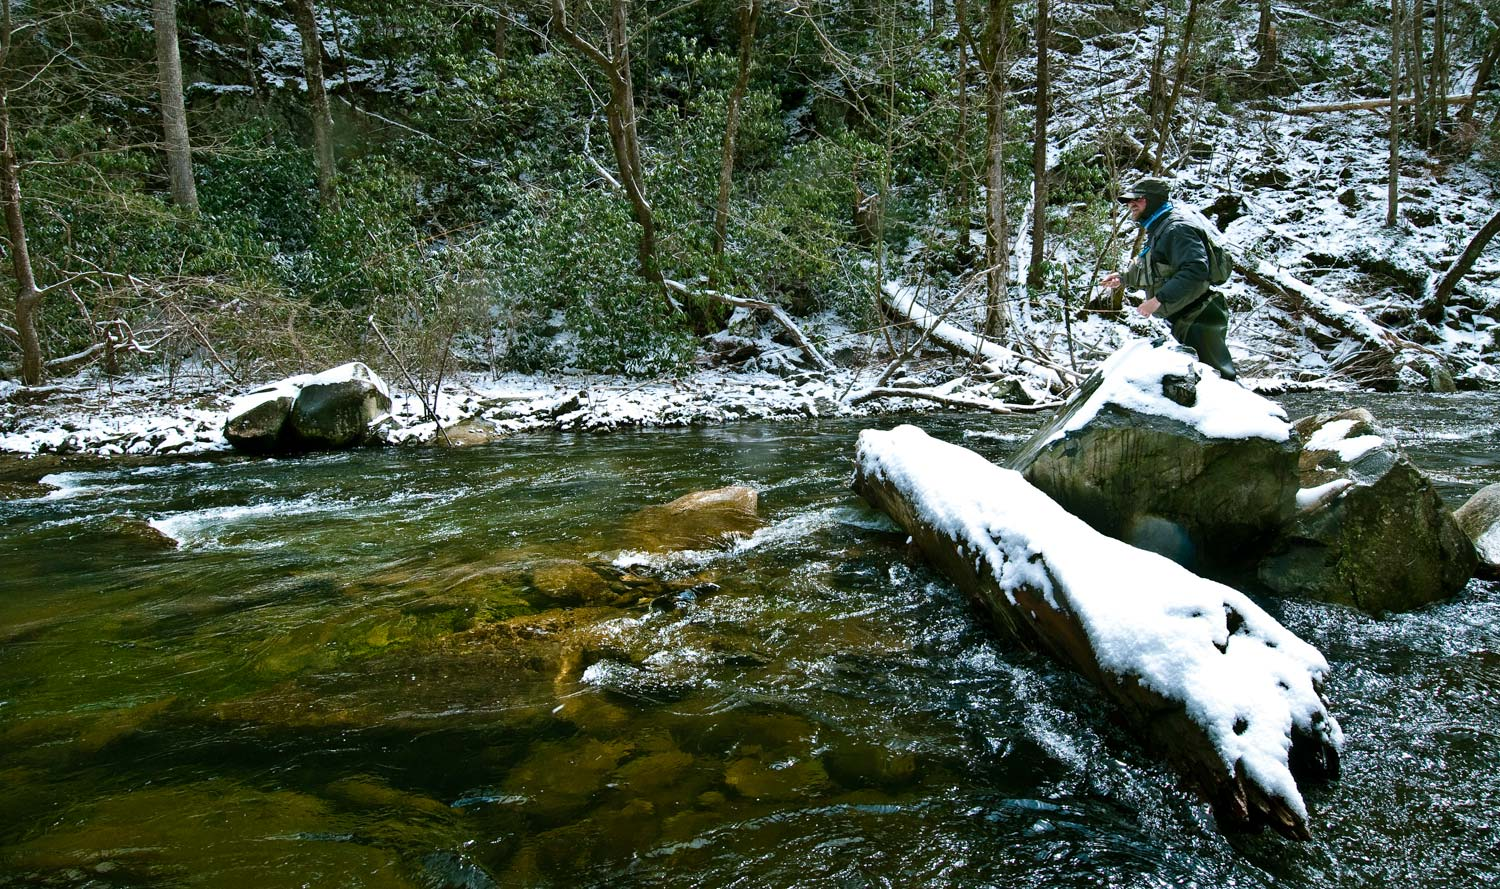 Fly Fishing in the Winter – Getting in the Routine